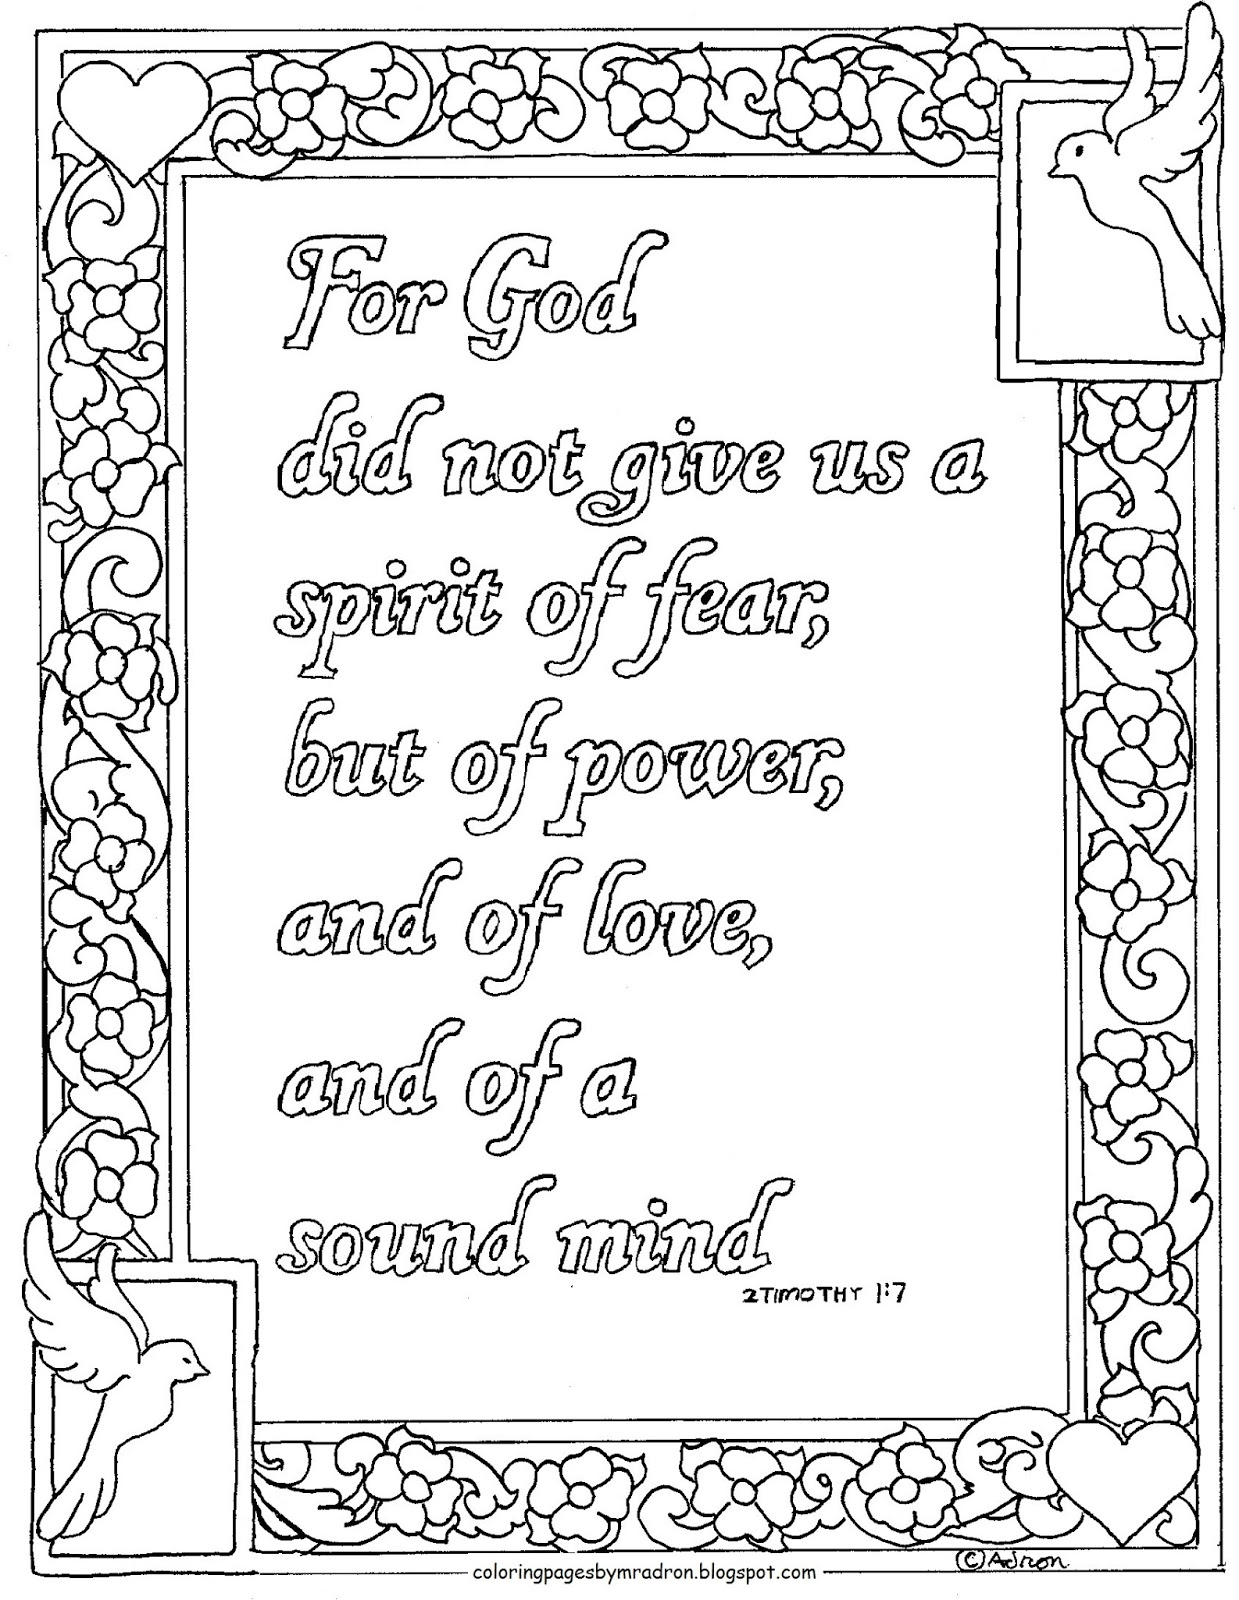 Coloring Pages For Kids By Mr Adron 2 Timothy 1 7